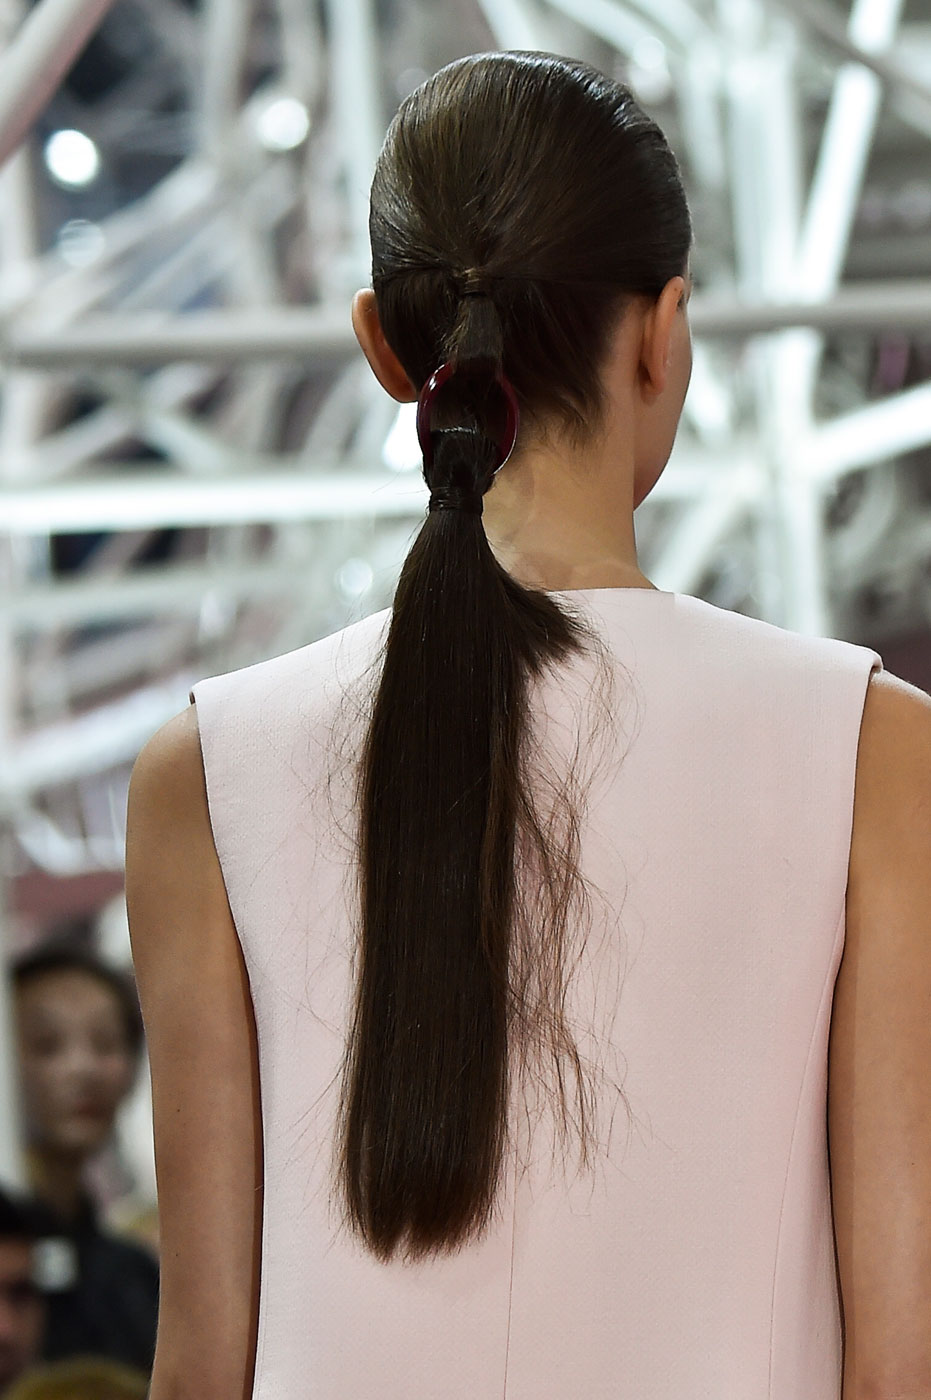 Christian-Dior-fashion-runway-show-close-ups-haute-couture-paris-spring-summer-2015-the-impression-114